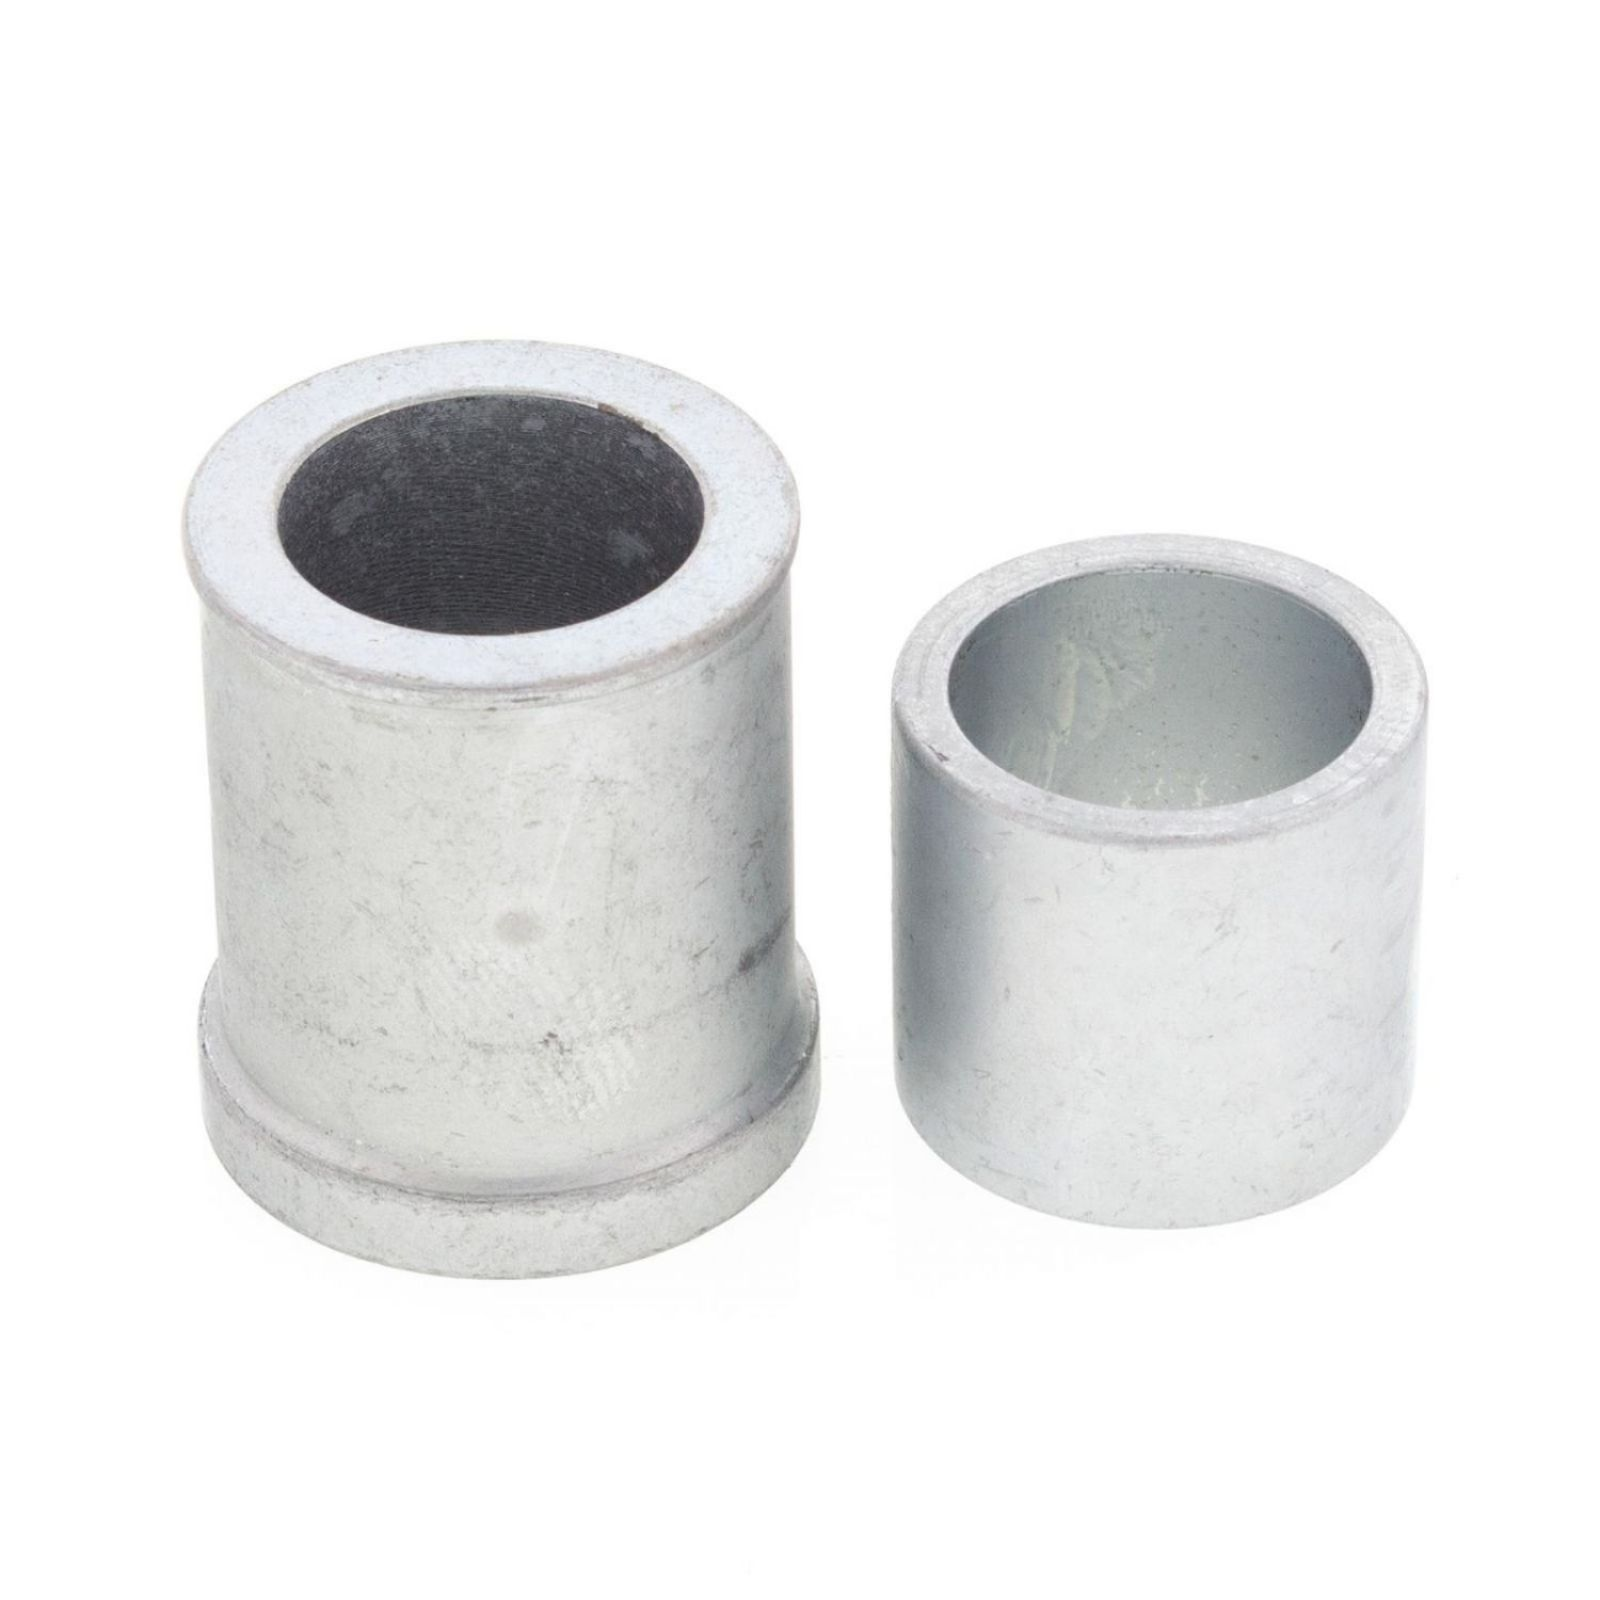 WRP Front Wheel Spacer Kits - WRP111002 image